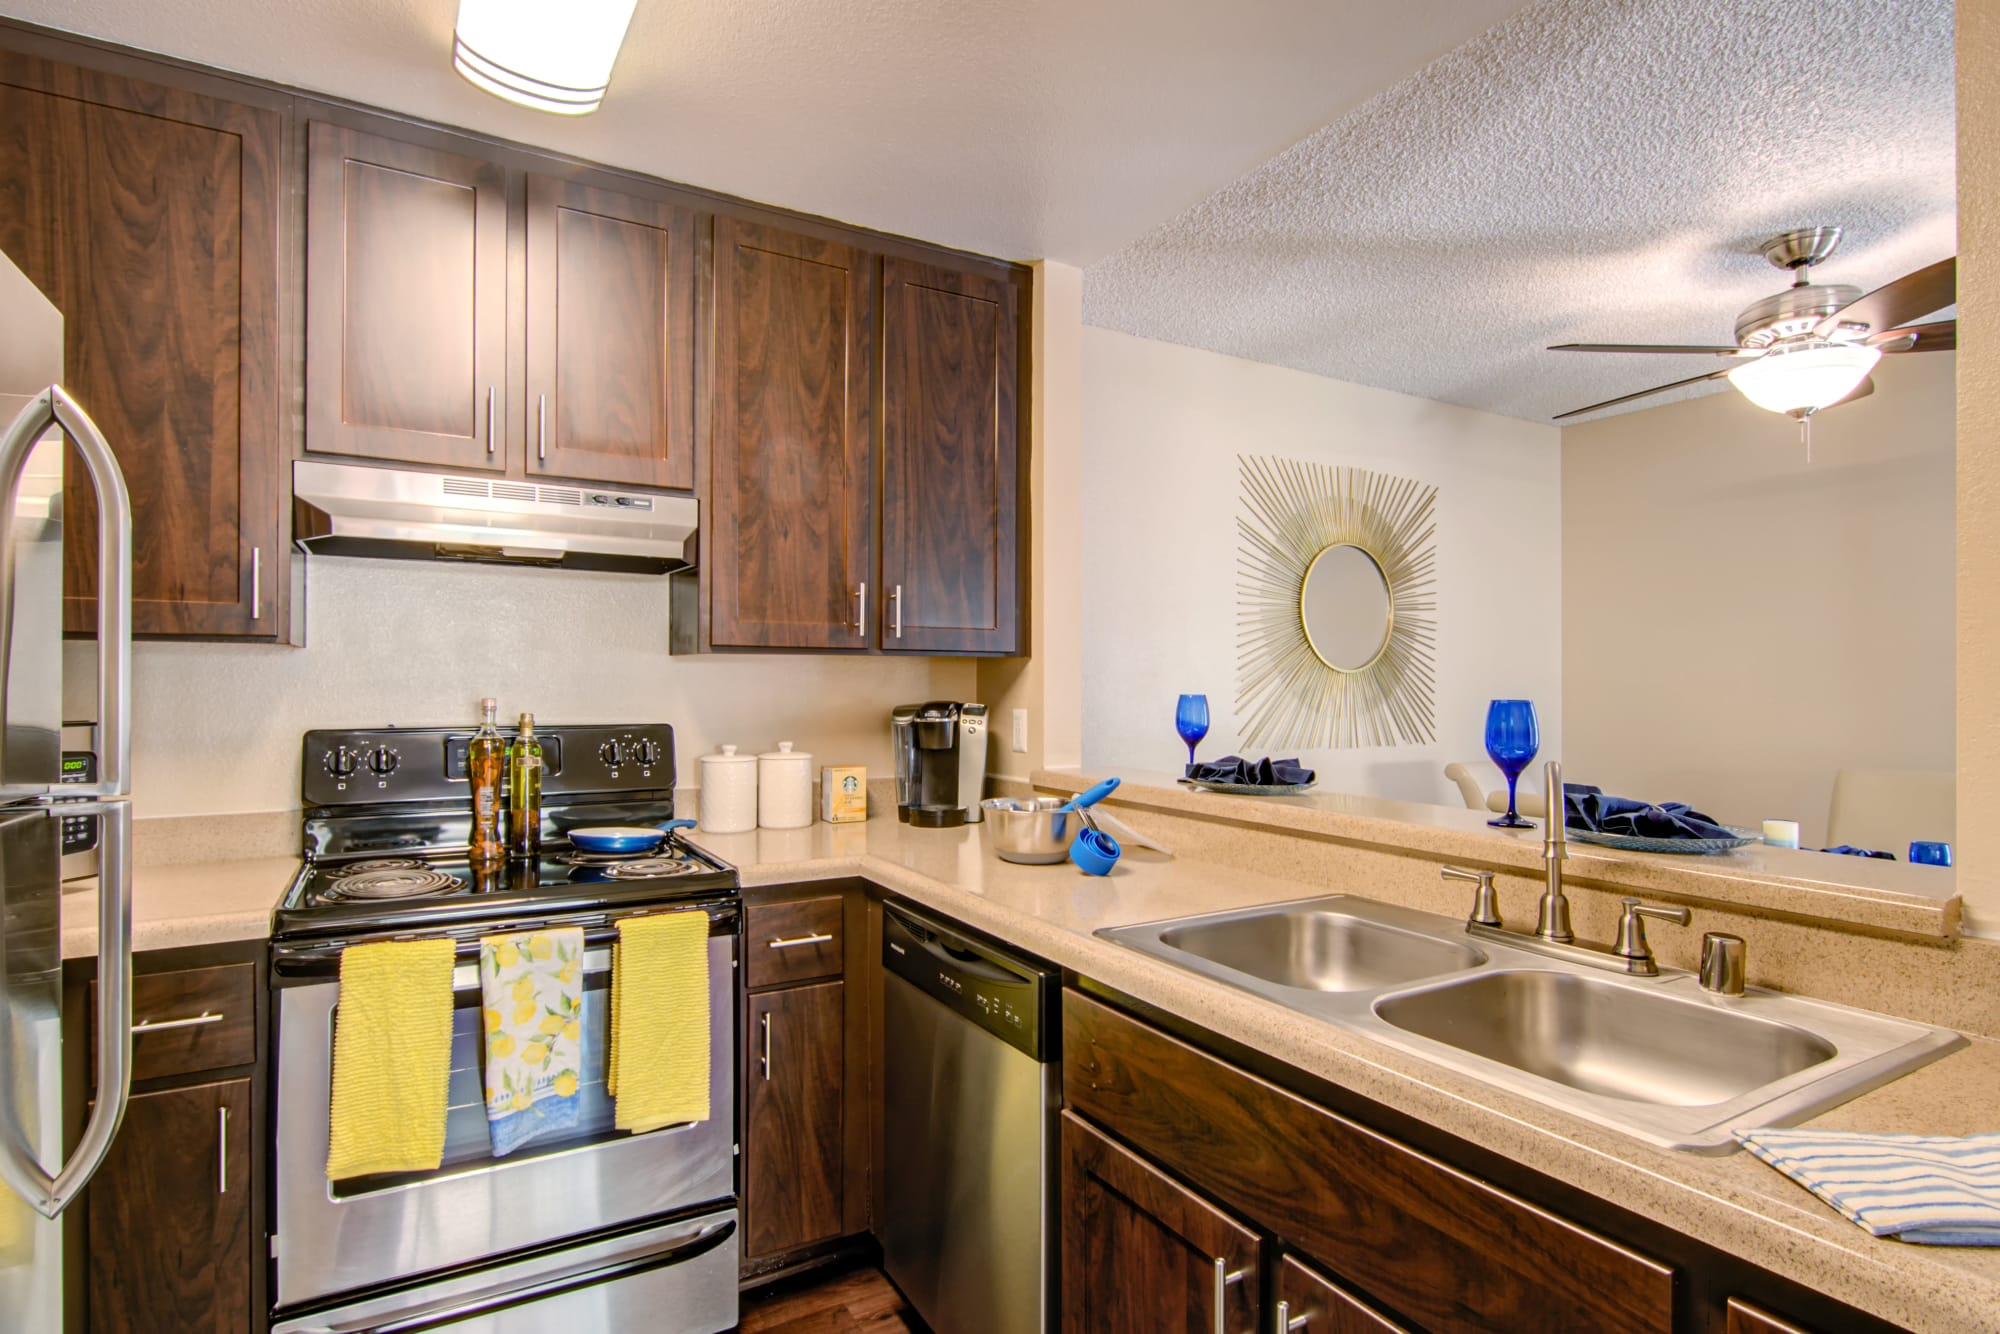 Renovated kitchen with stainless steel appliances at Lakeview Village Apartments in Spring Valley, California